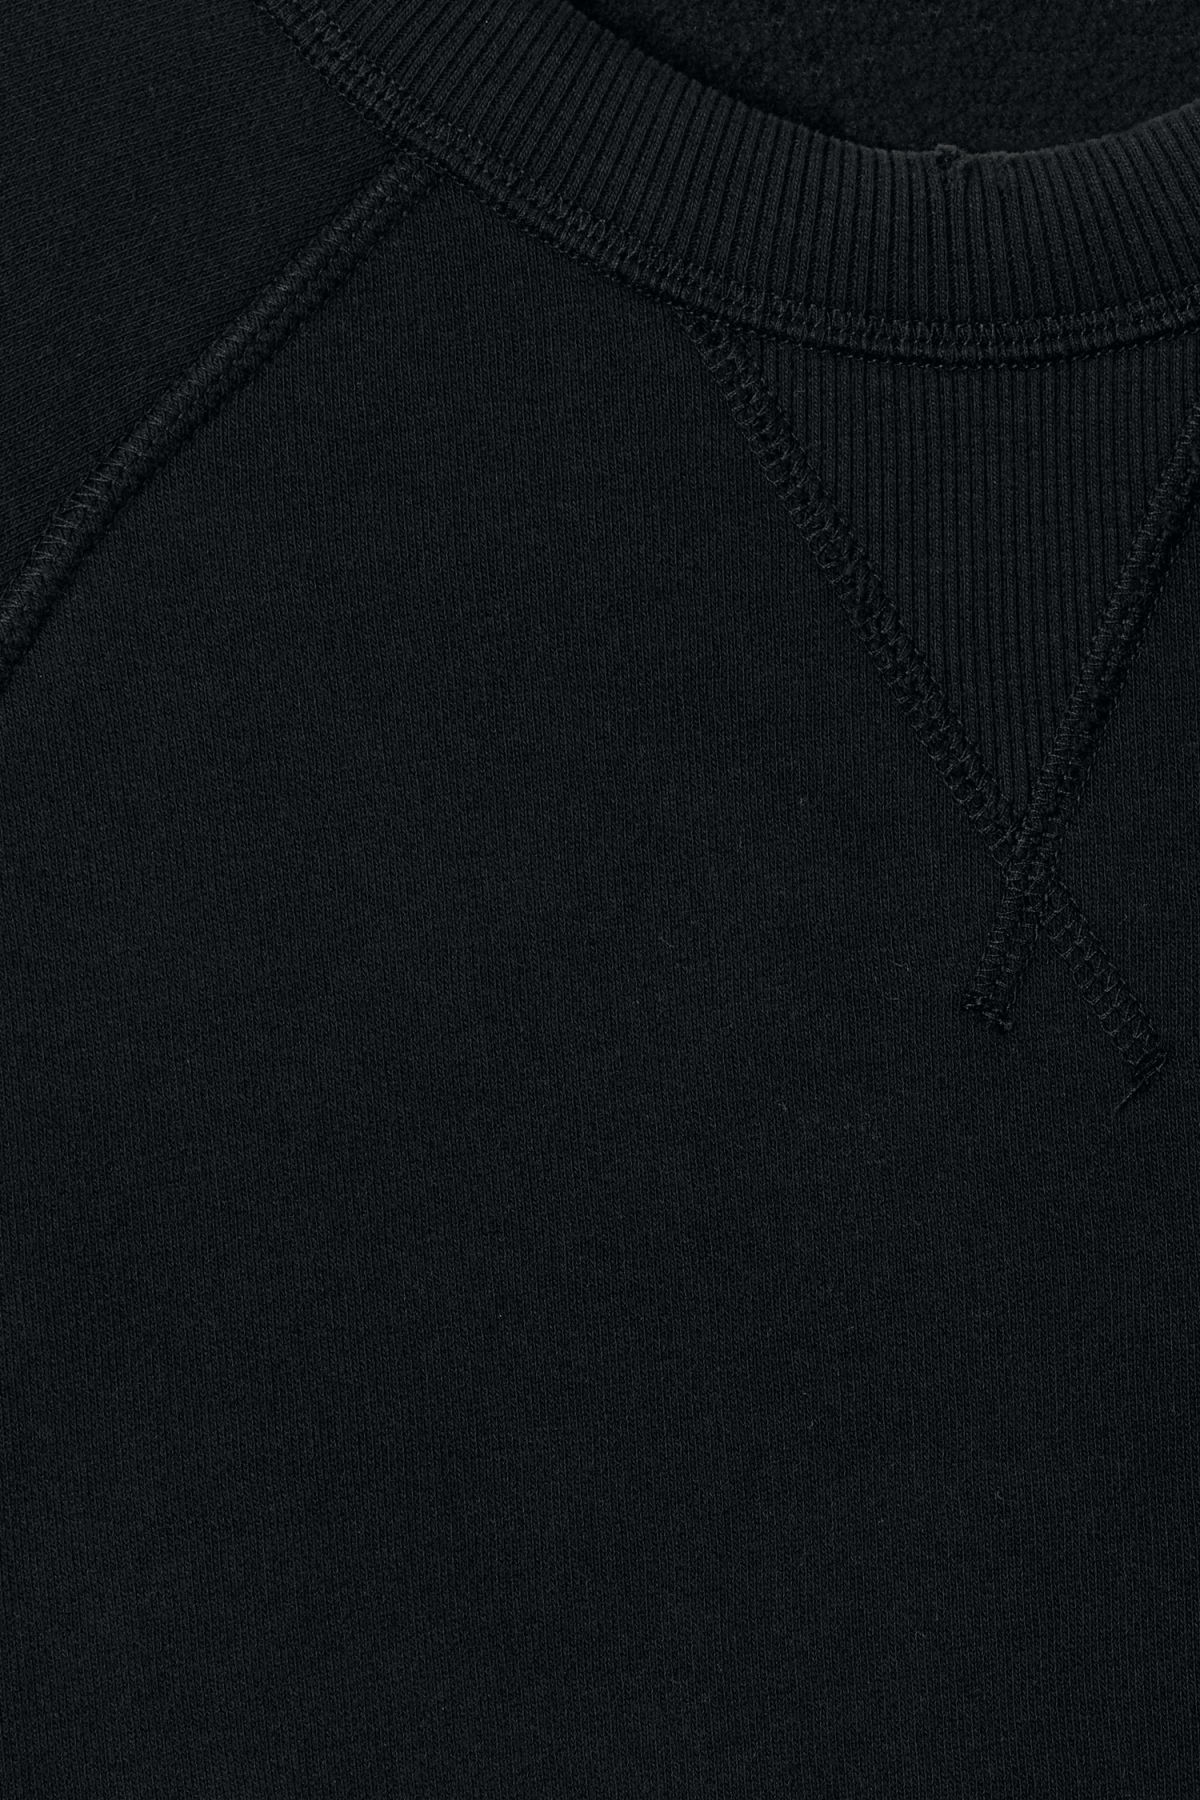 Detailed image of Weekday jaxon worn sweatshirt in black